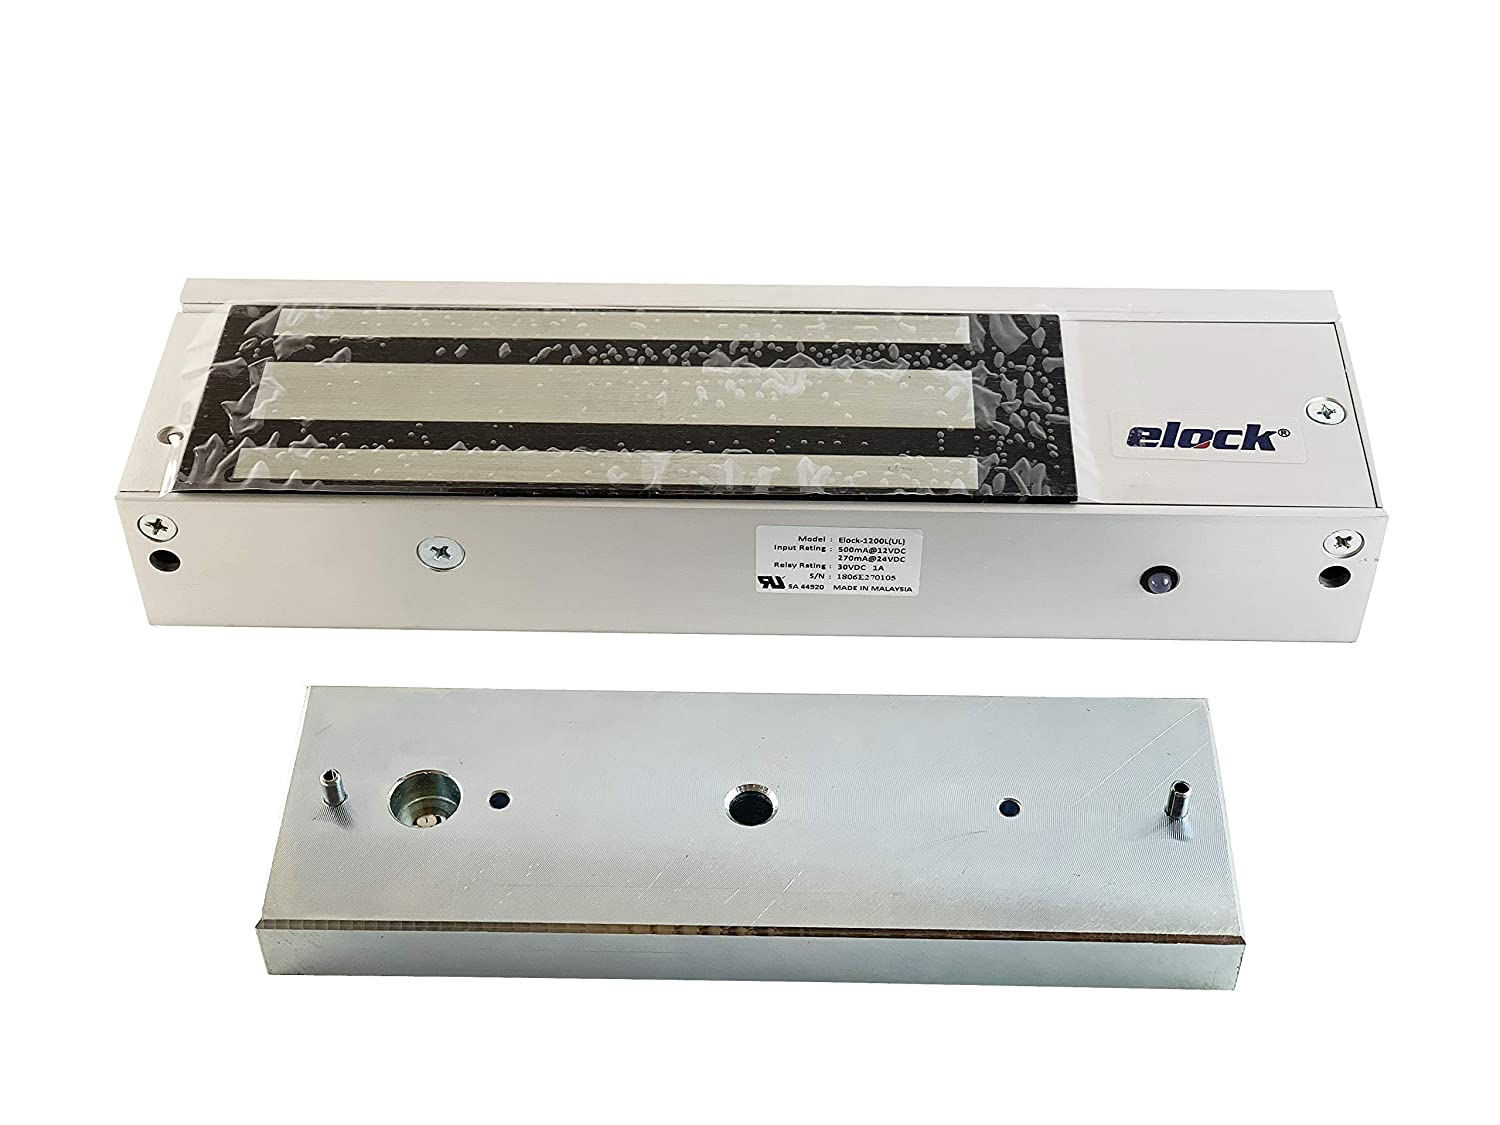 UL Certified Elock 1200 lbs MagLock//Electromagnetic Lock with LED Holding Force for Access Control 12//24VDC Kyodensha Technologies Sdn Bhd M